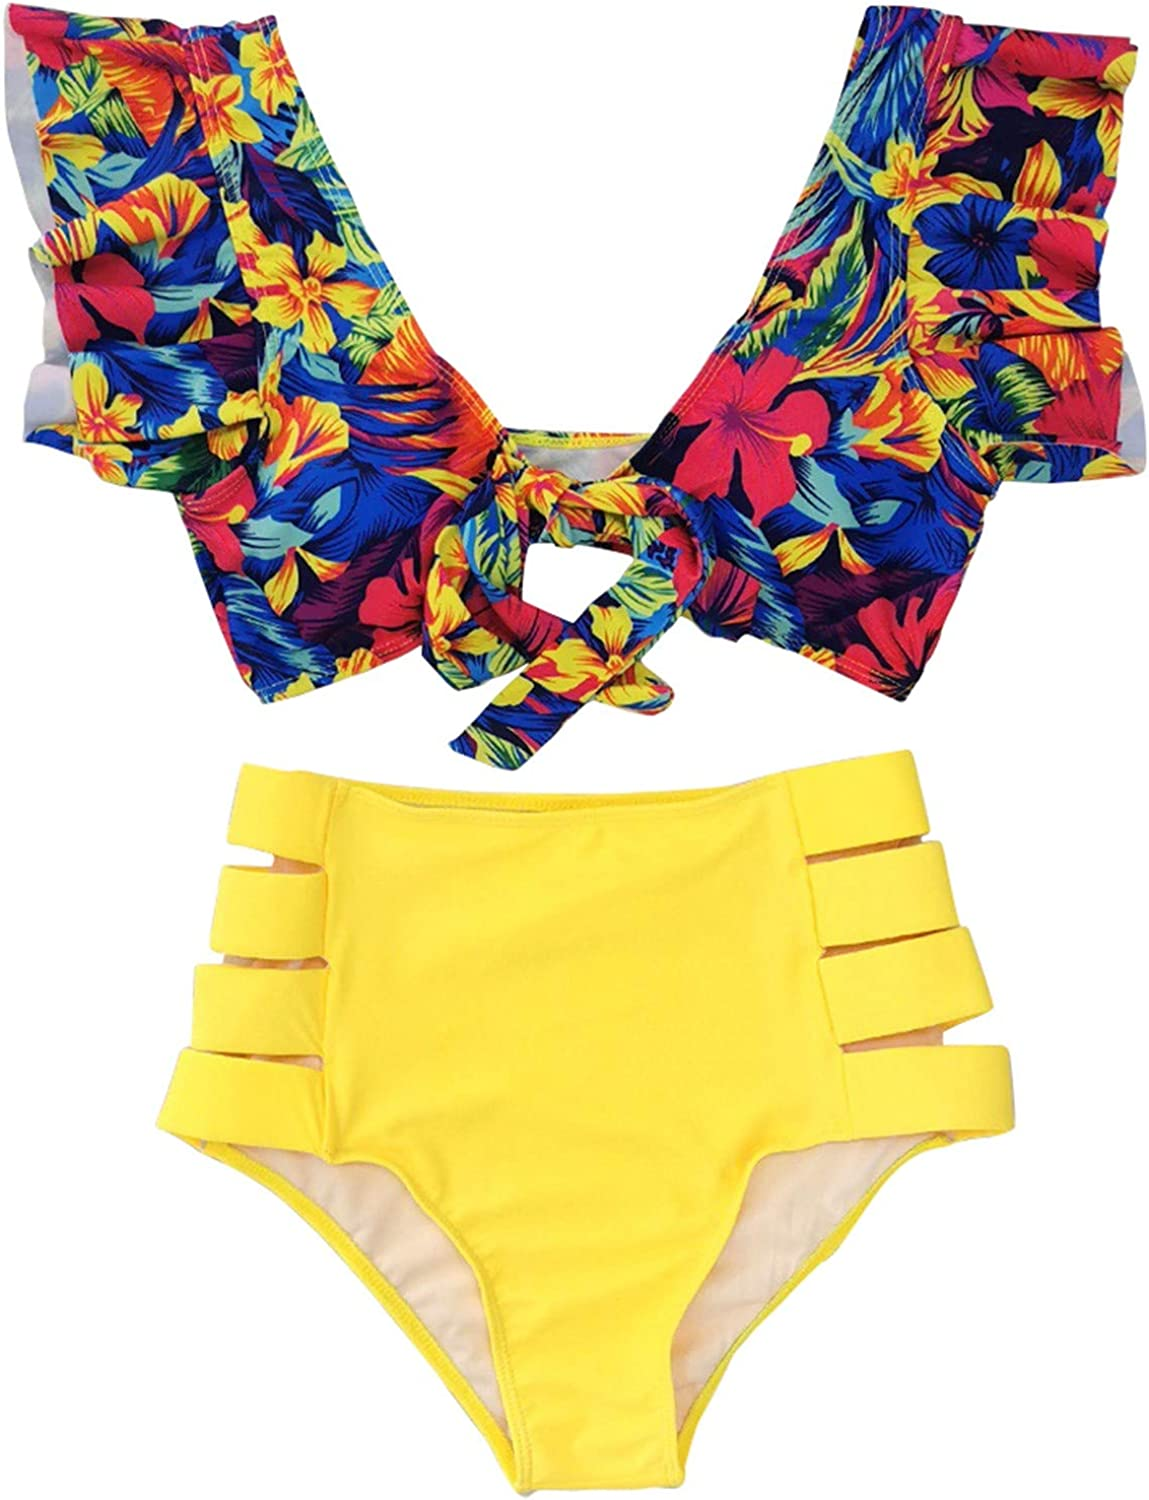 Xiloccer Swimsuits for Women Bikini Set Two Piece Swimsuit Cute Bathing Suits Summer Beach Swimwear Cover Up Swimsuits